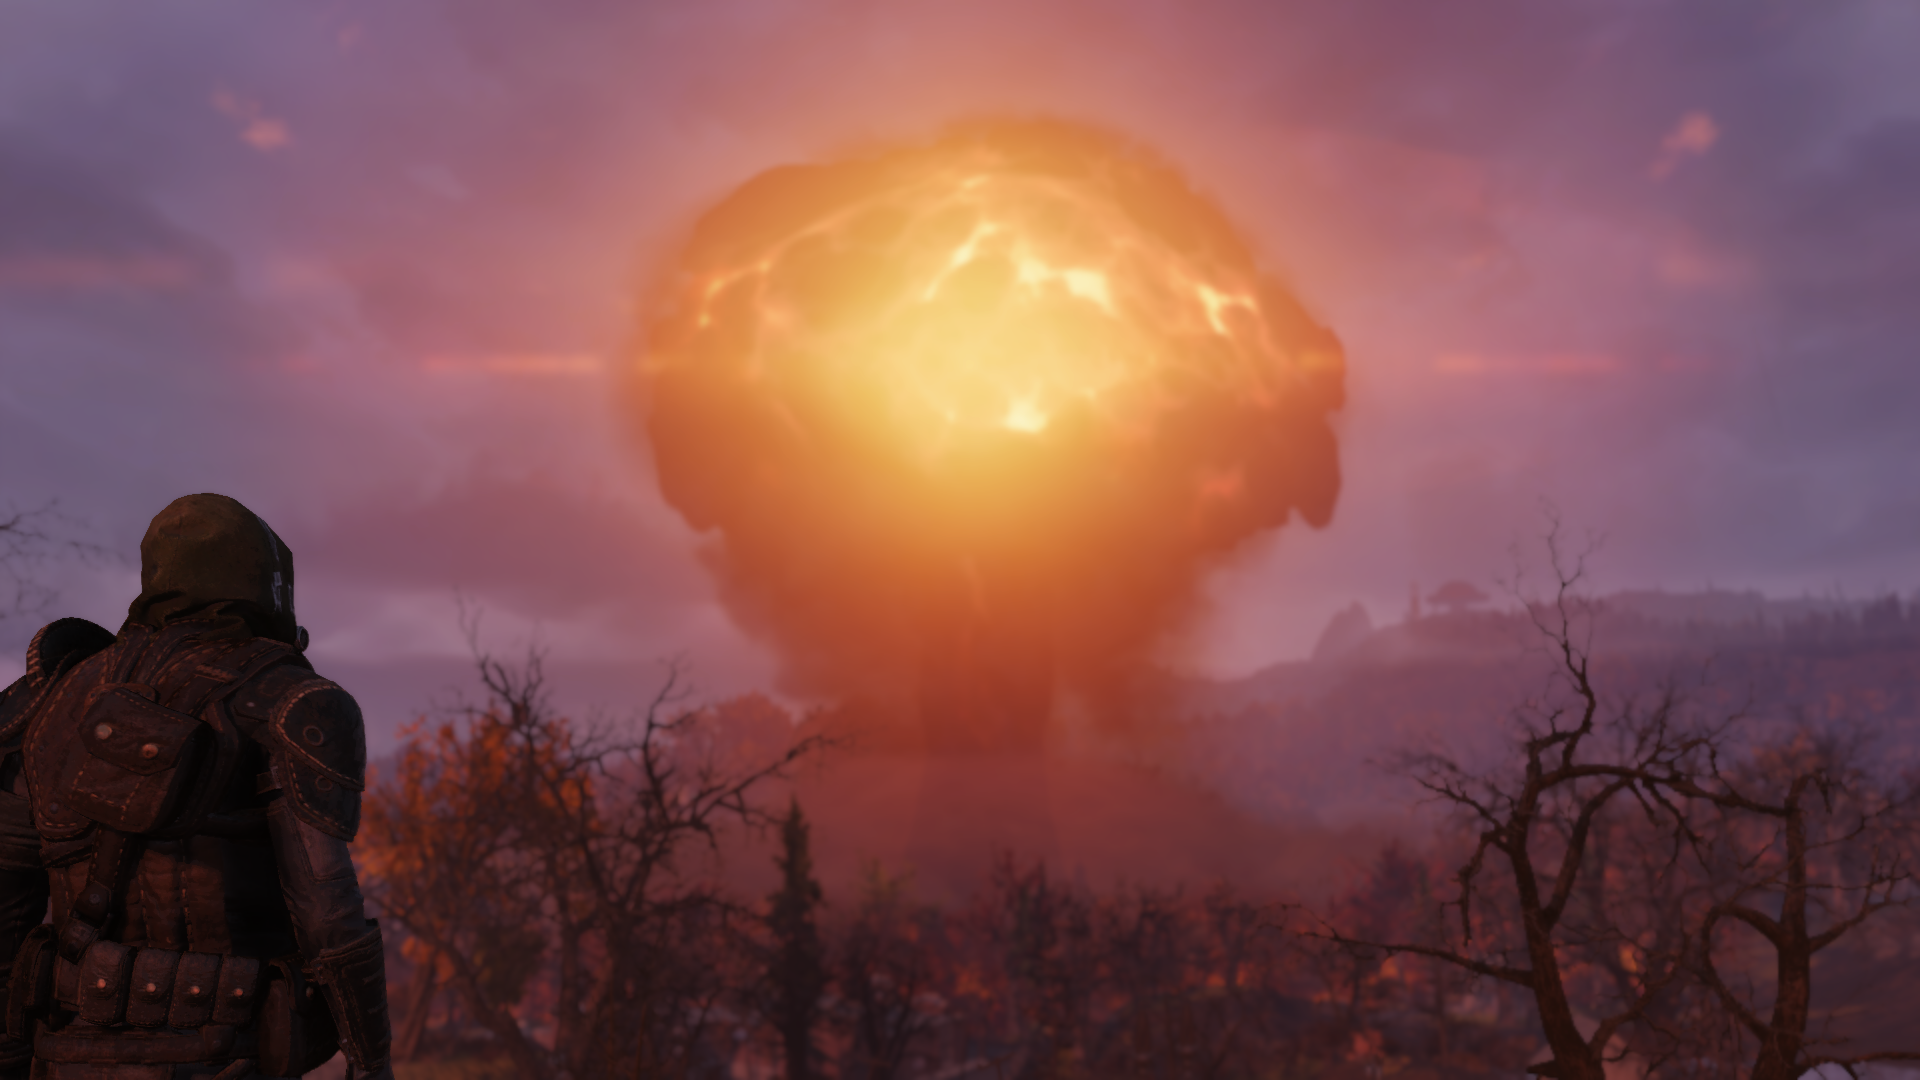 Fallout 76 - a player watches a nuclear mushroom cloud bloom in the distance